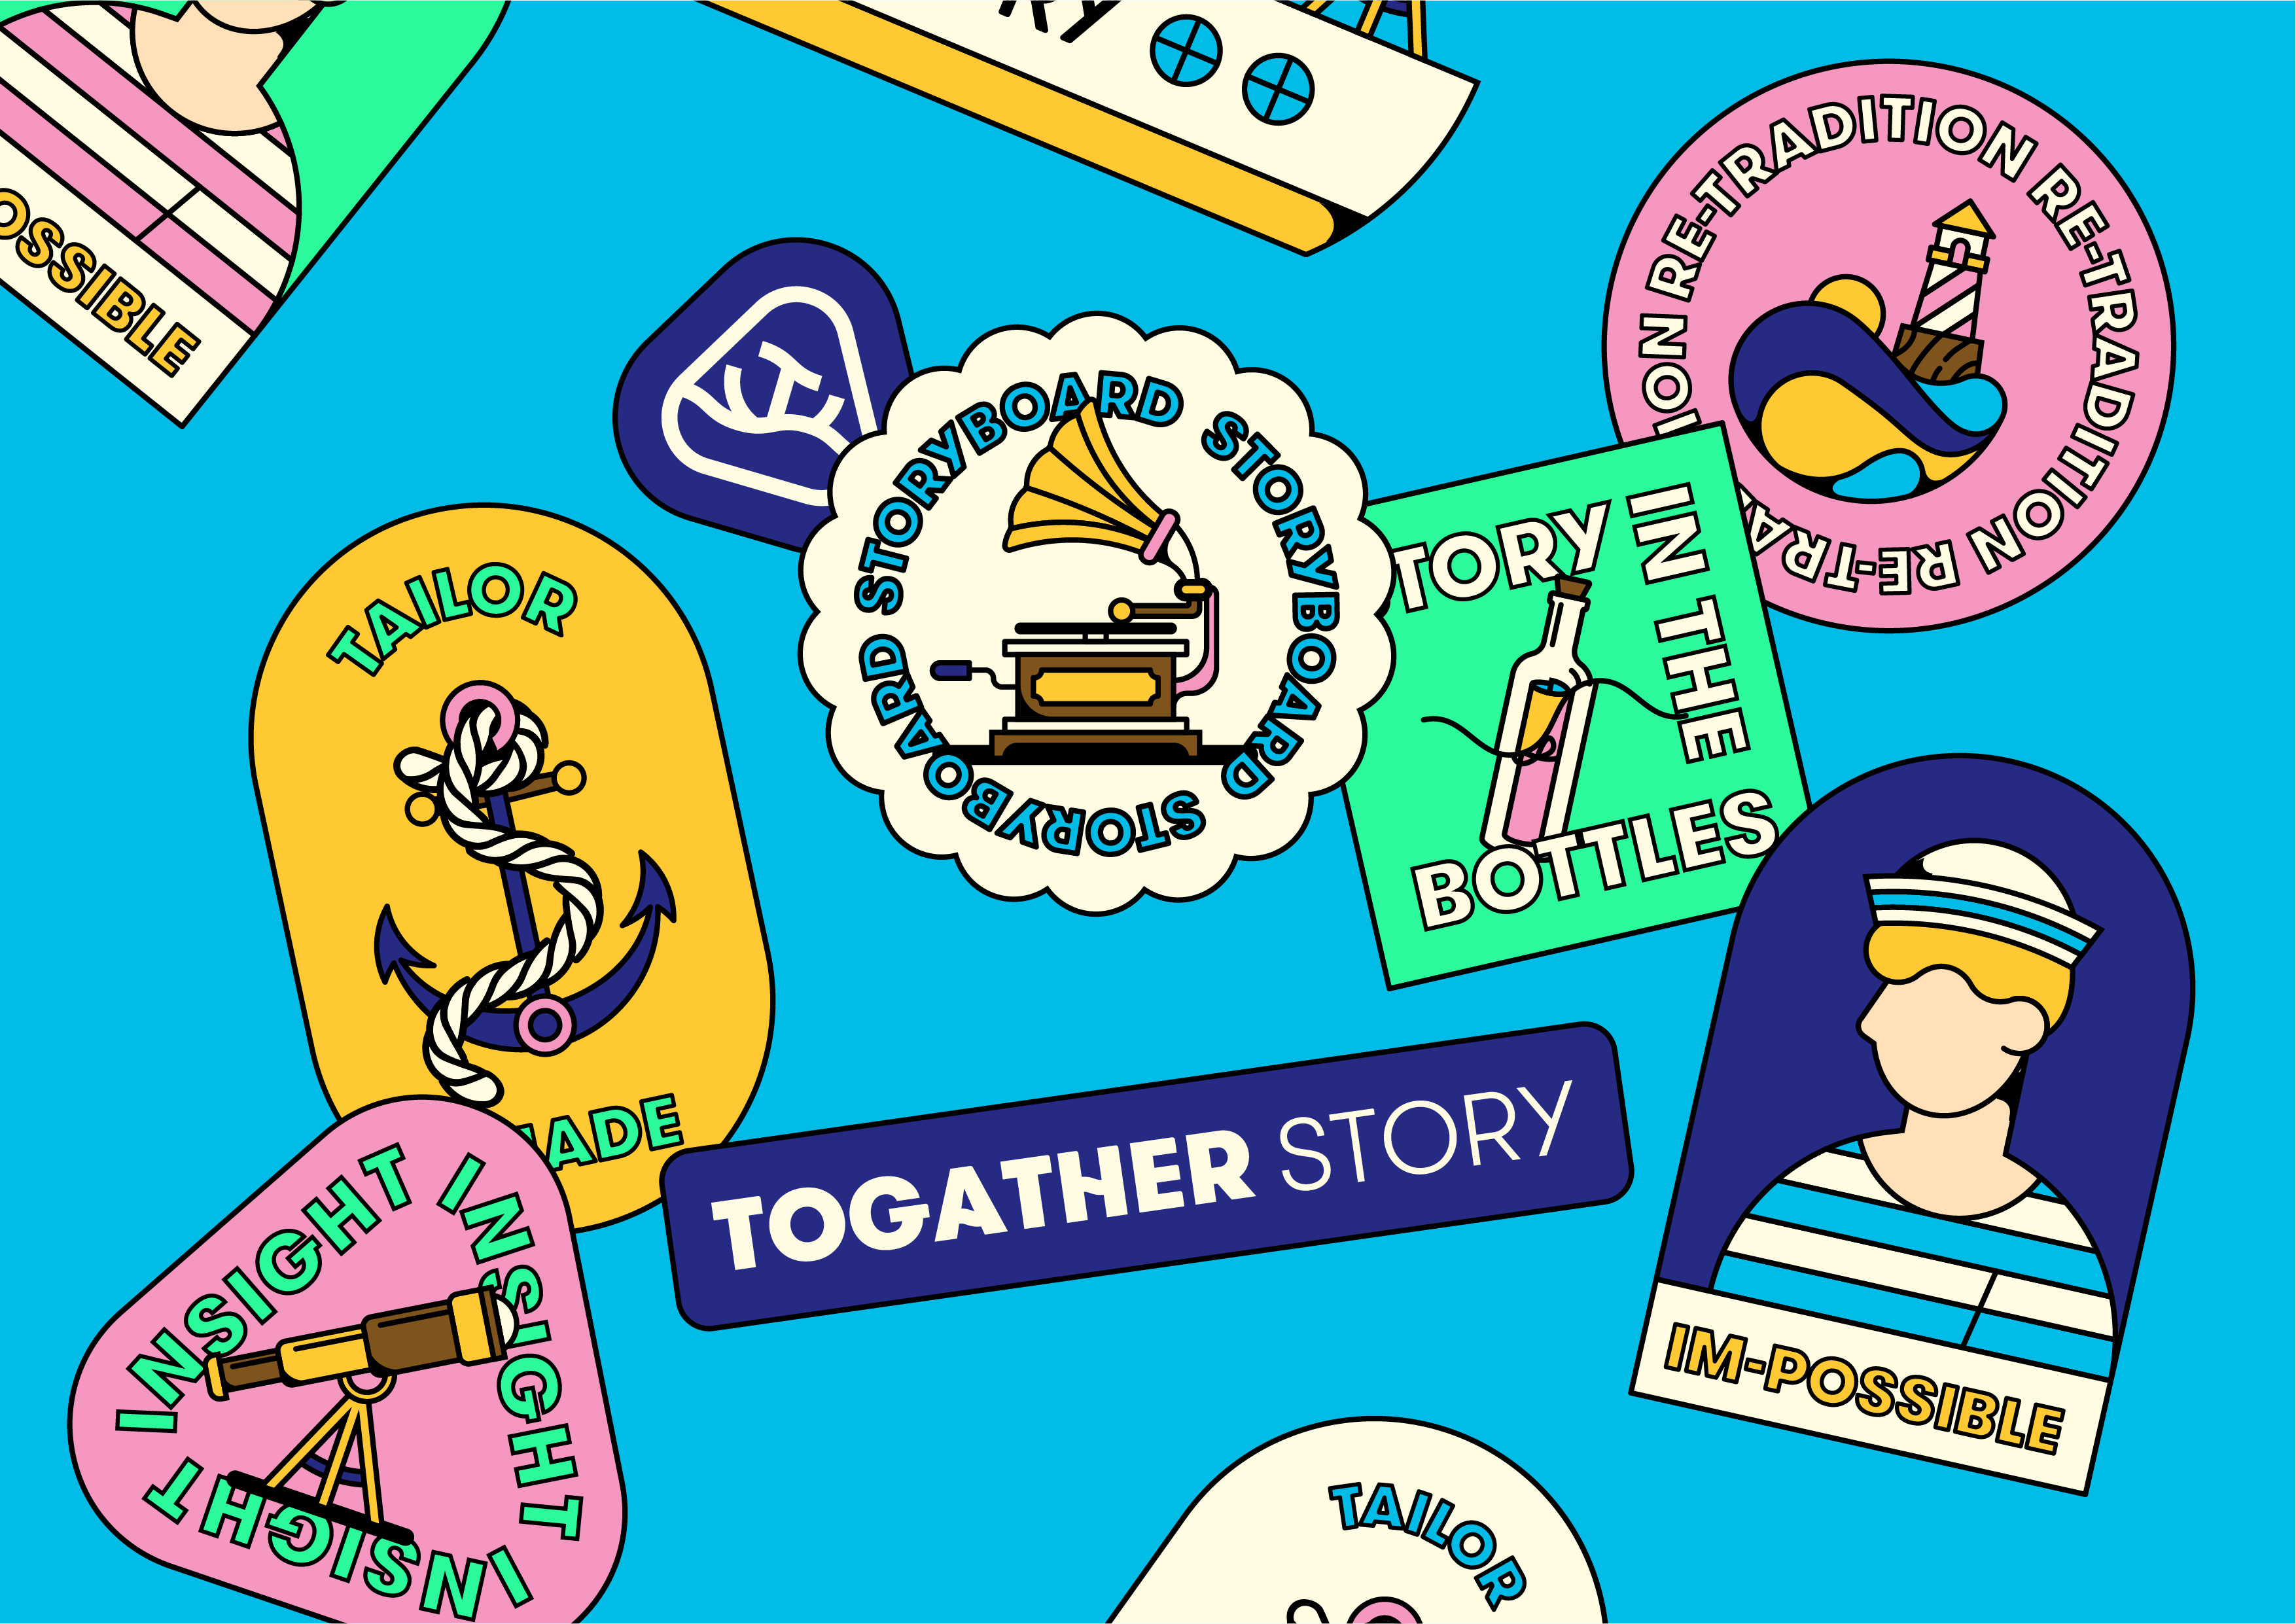 Togather Story Brand Identity Design by Higgs Design